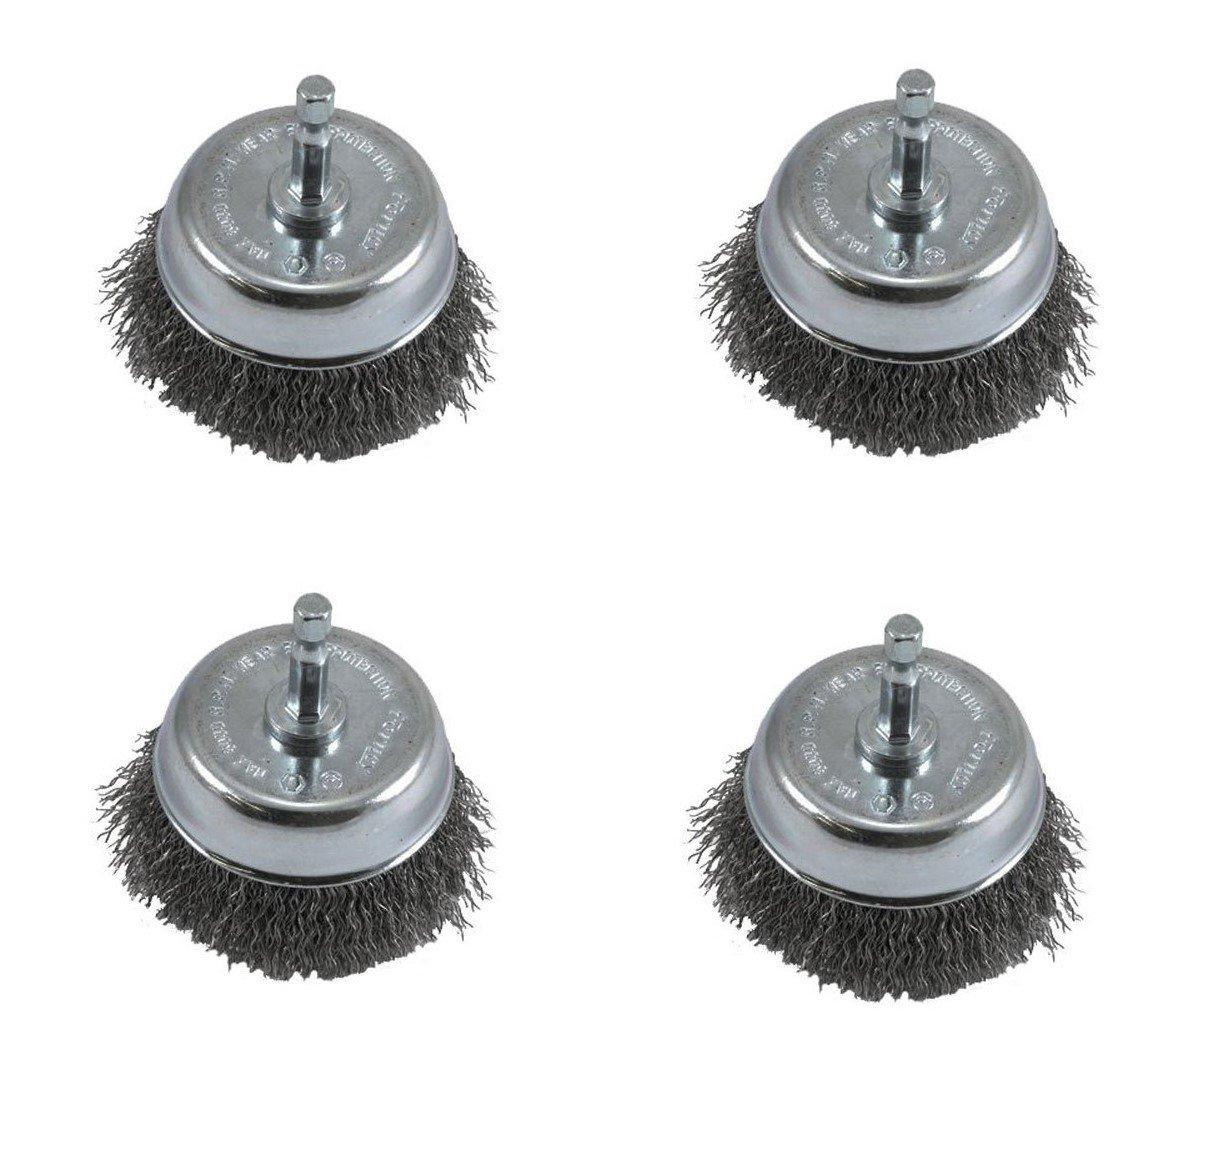 Forney 72731 Wire Cup Brush, Coarse Crimped with 1/4-Inch Hex Shank, 3-Inch-by-.012-Inch, 4 Pack